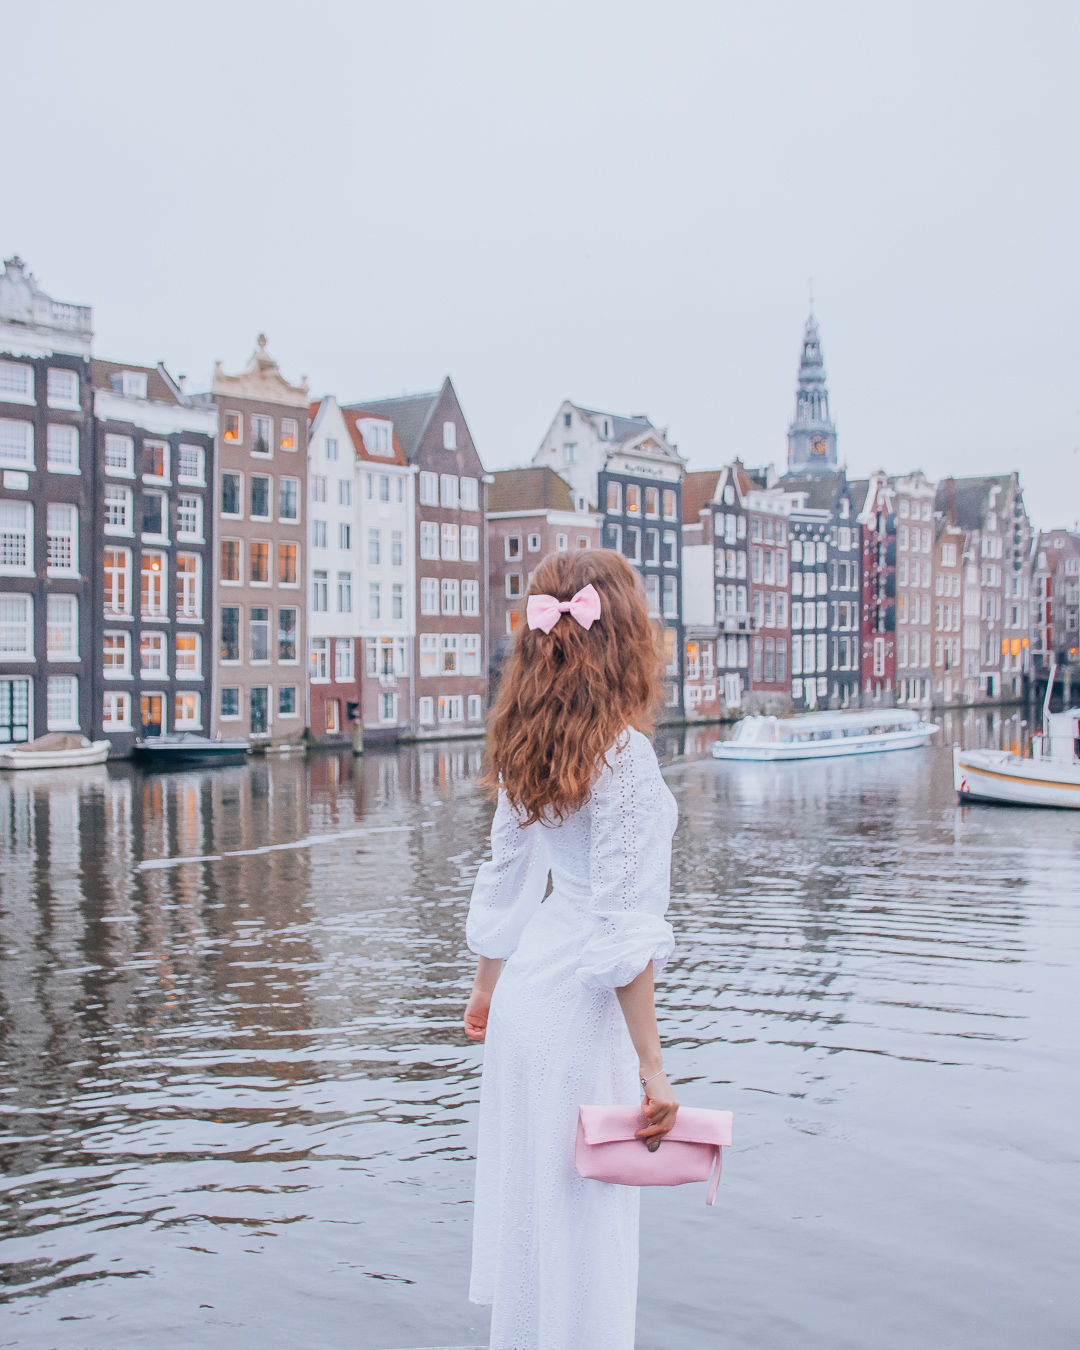 Water, houses and a girl in Amsterdam